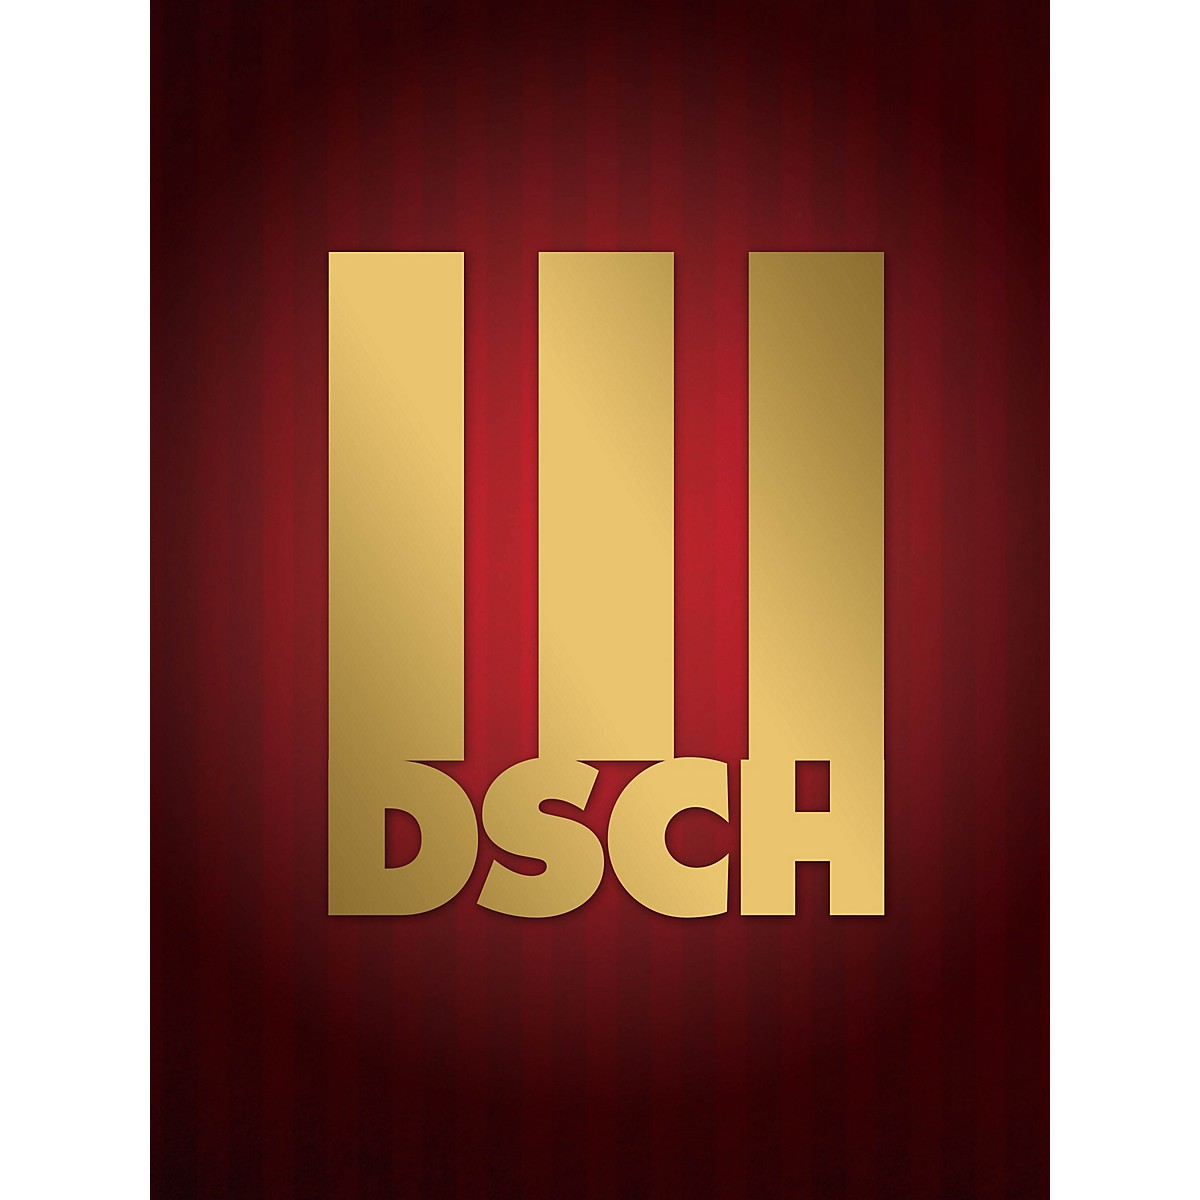 DSCH Symphony No. 4, Op. 43 (New Collected Works of Dmitri Shostakovich - Volume 19) DSCH Series Hardcover